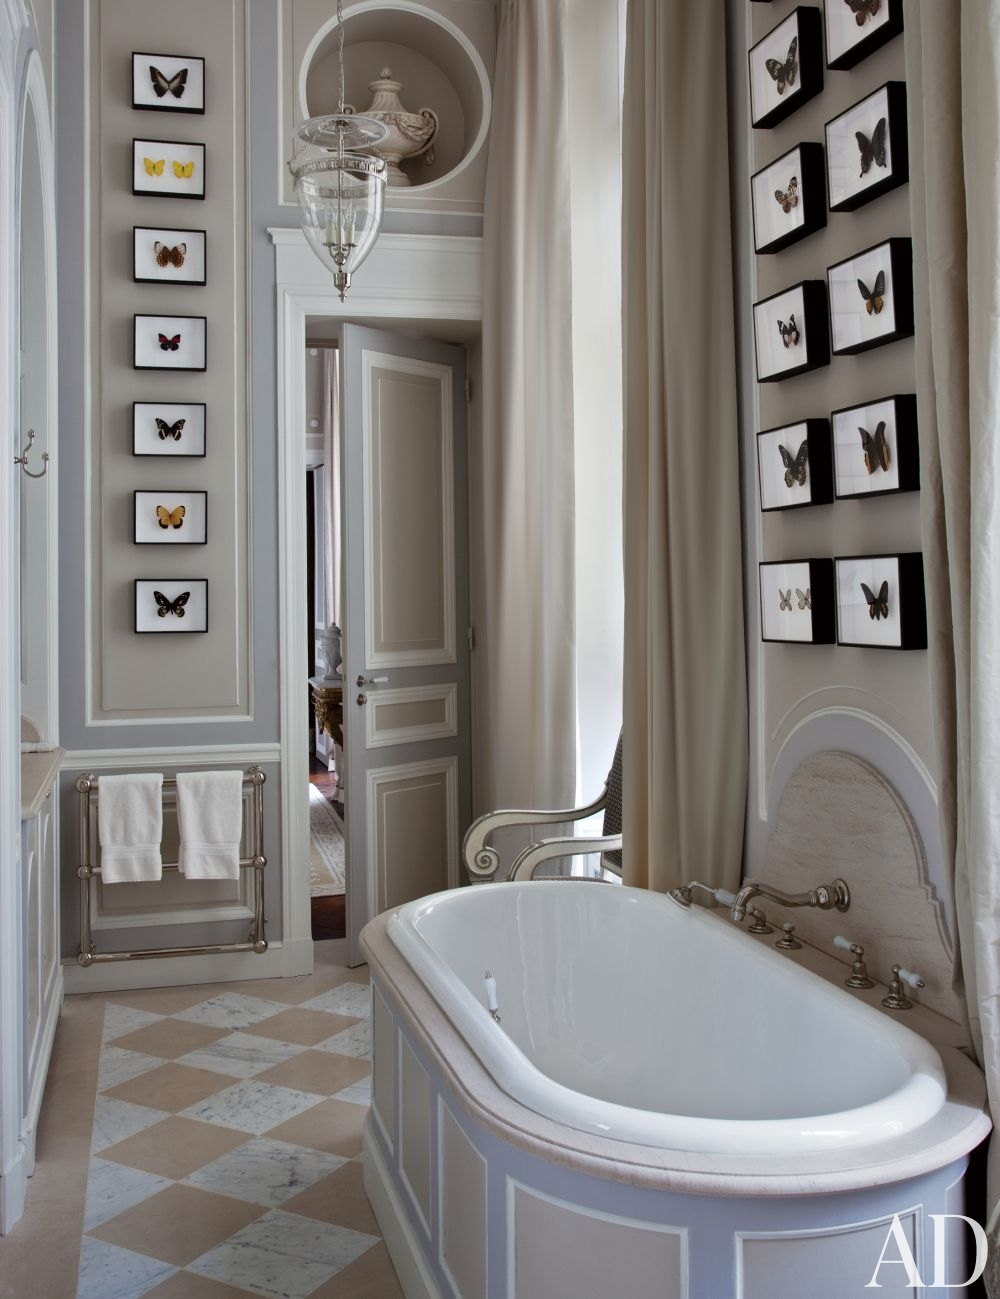 Traditional bathroom by jean louis deniot ad designfile for Architectural digest bathroom ideas